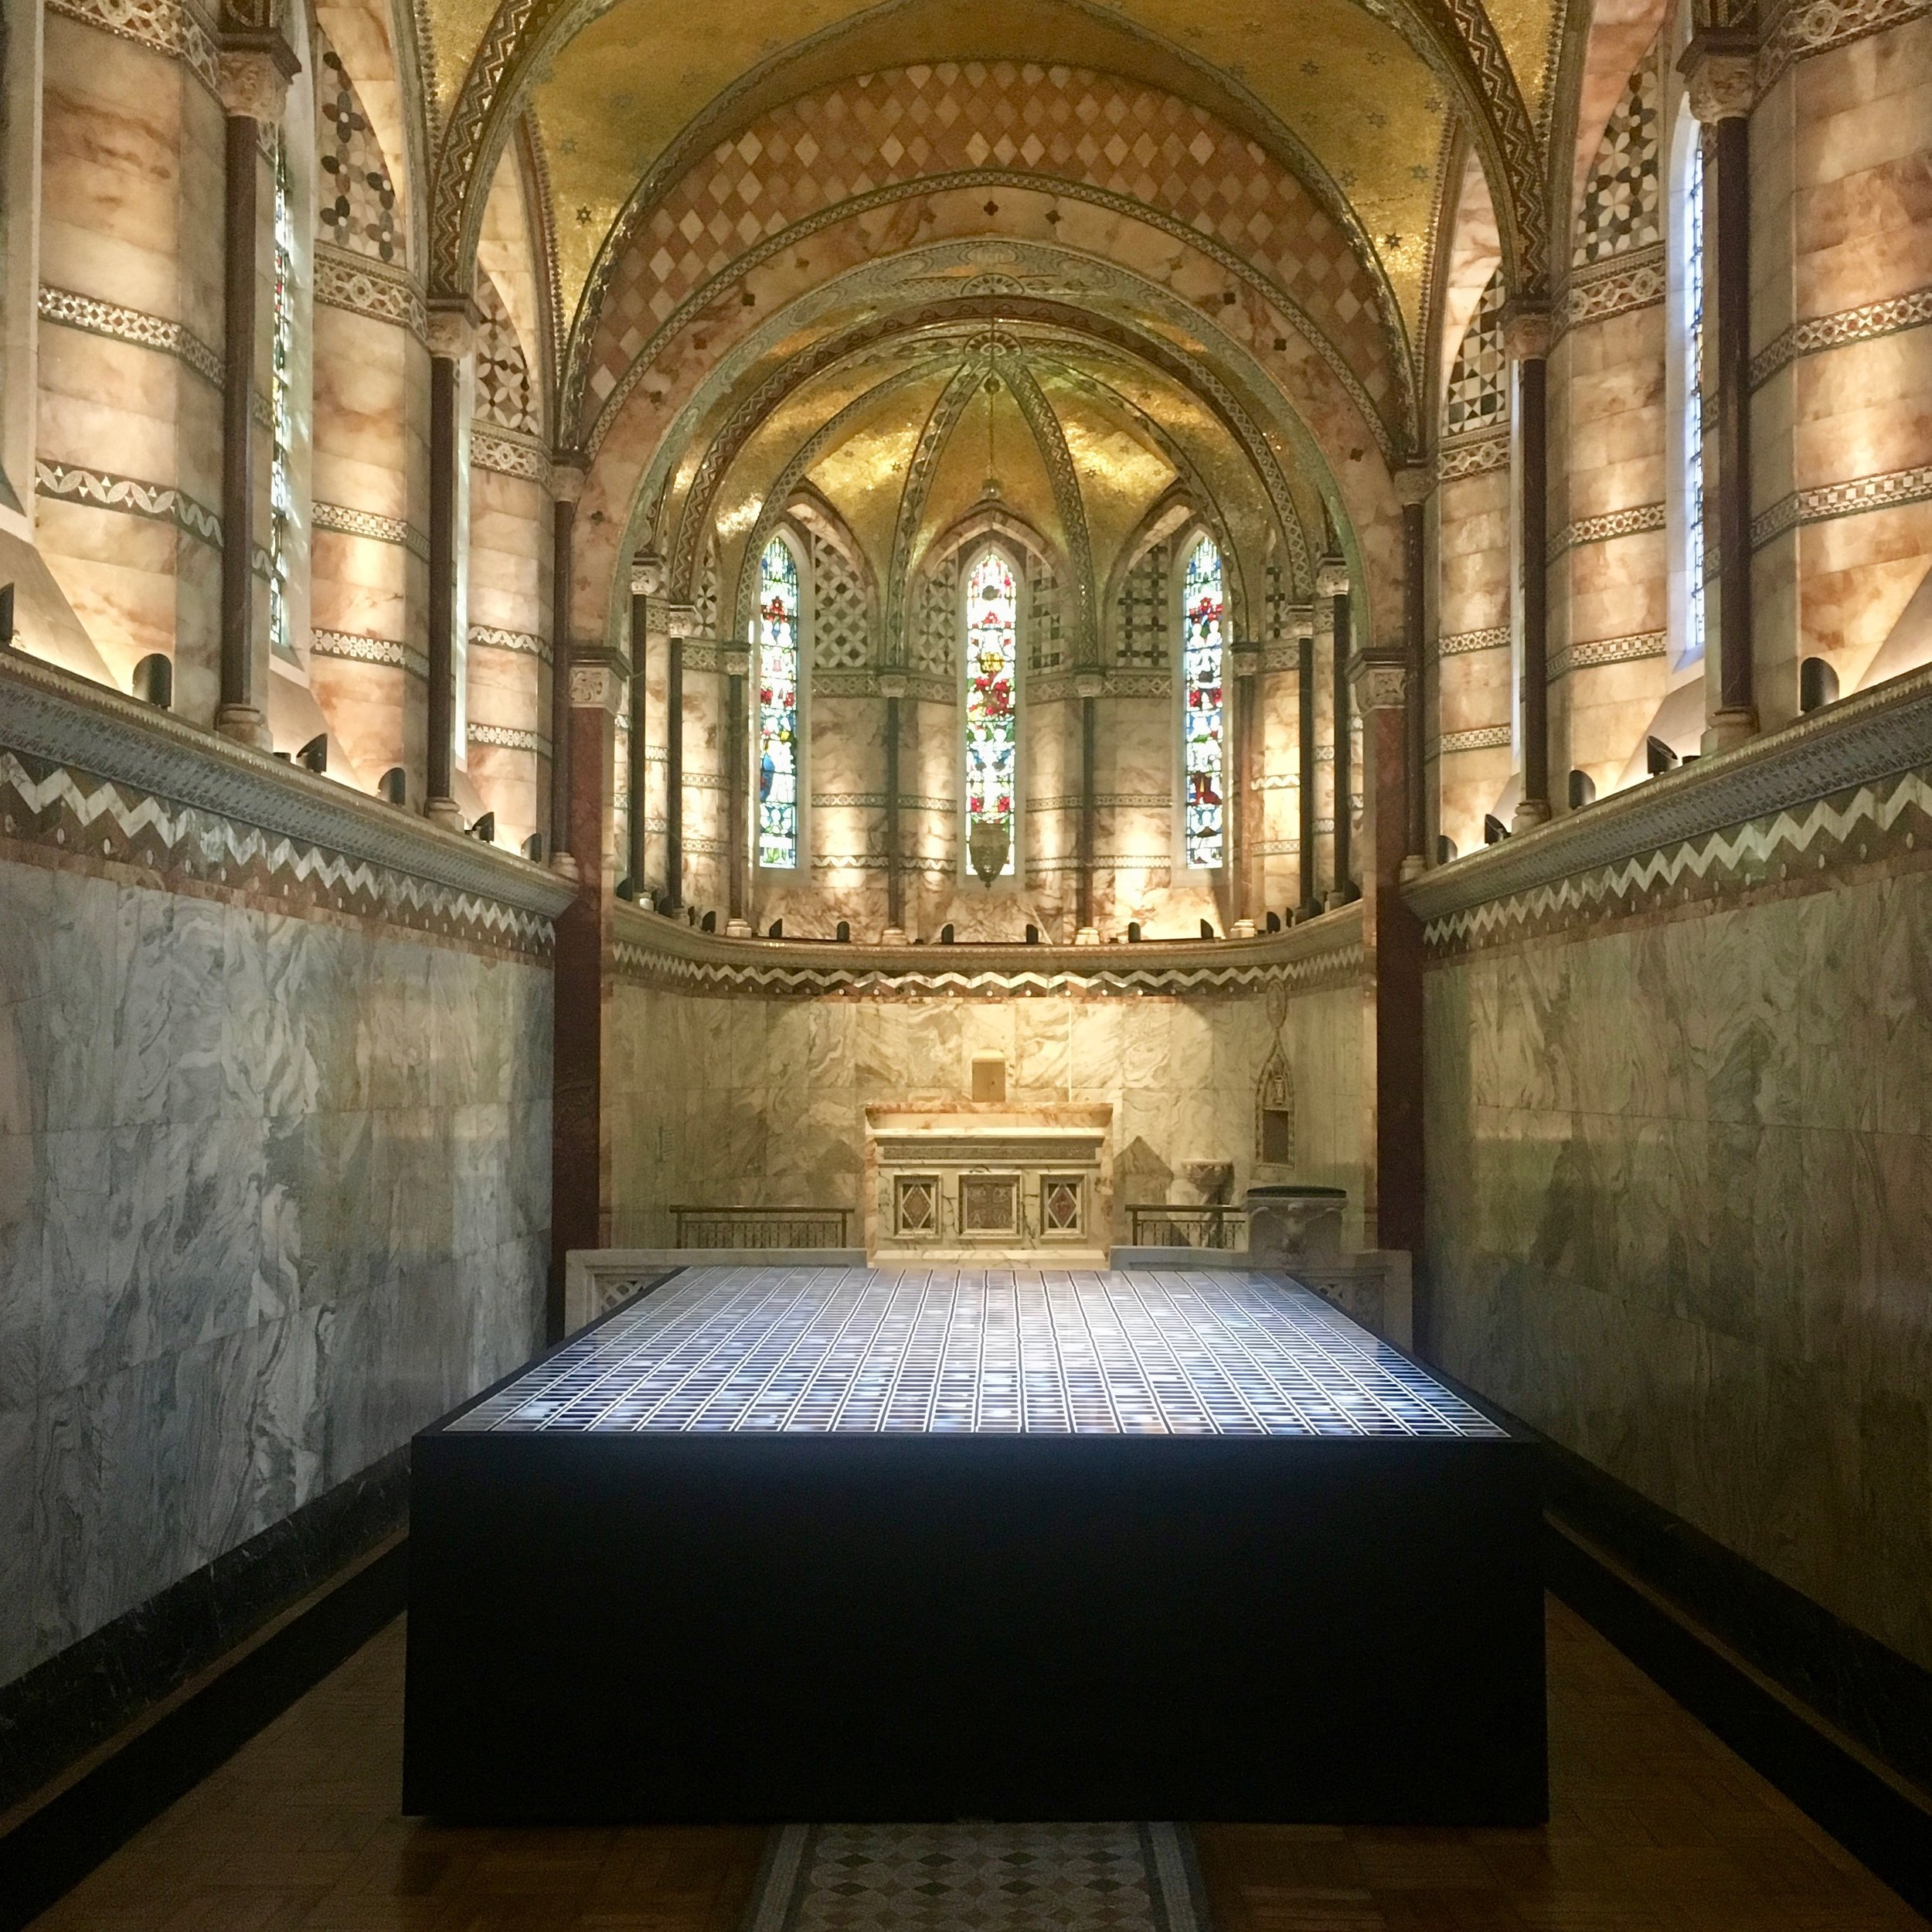 Installation view - Fitzrovia Chapel / Photo London - May 14-19, 2019